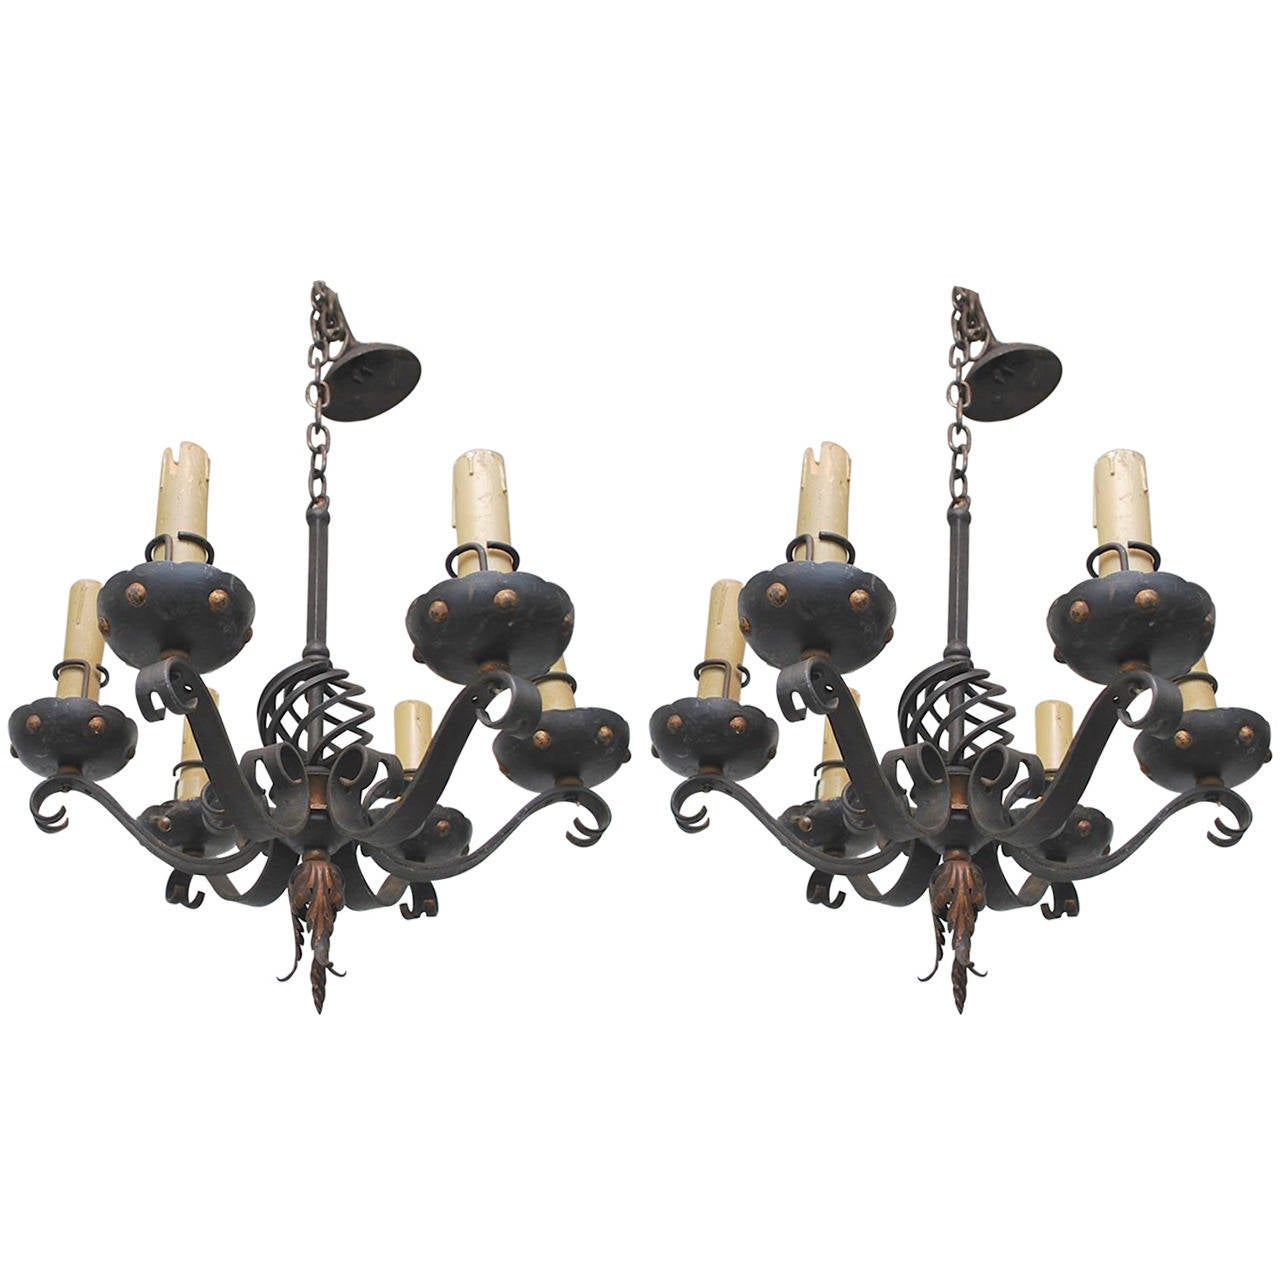 Pair of 1930 french small wrought iron chandeliers for sale at 1stdibs pair of 1930 french small wrought iron chandeliers for sale aloadofball Images